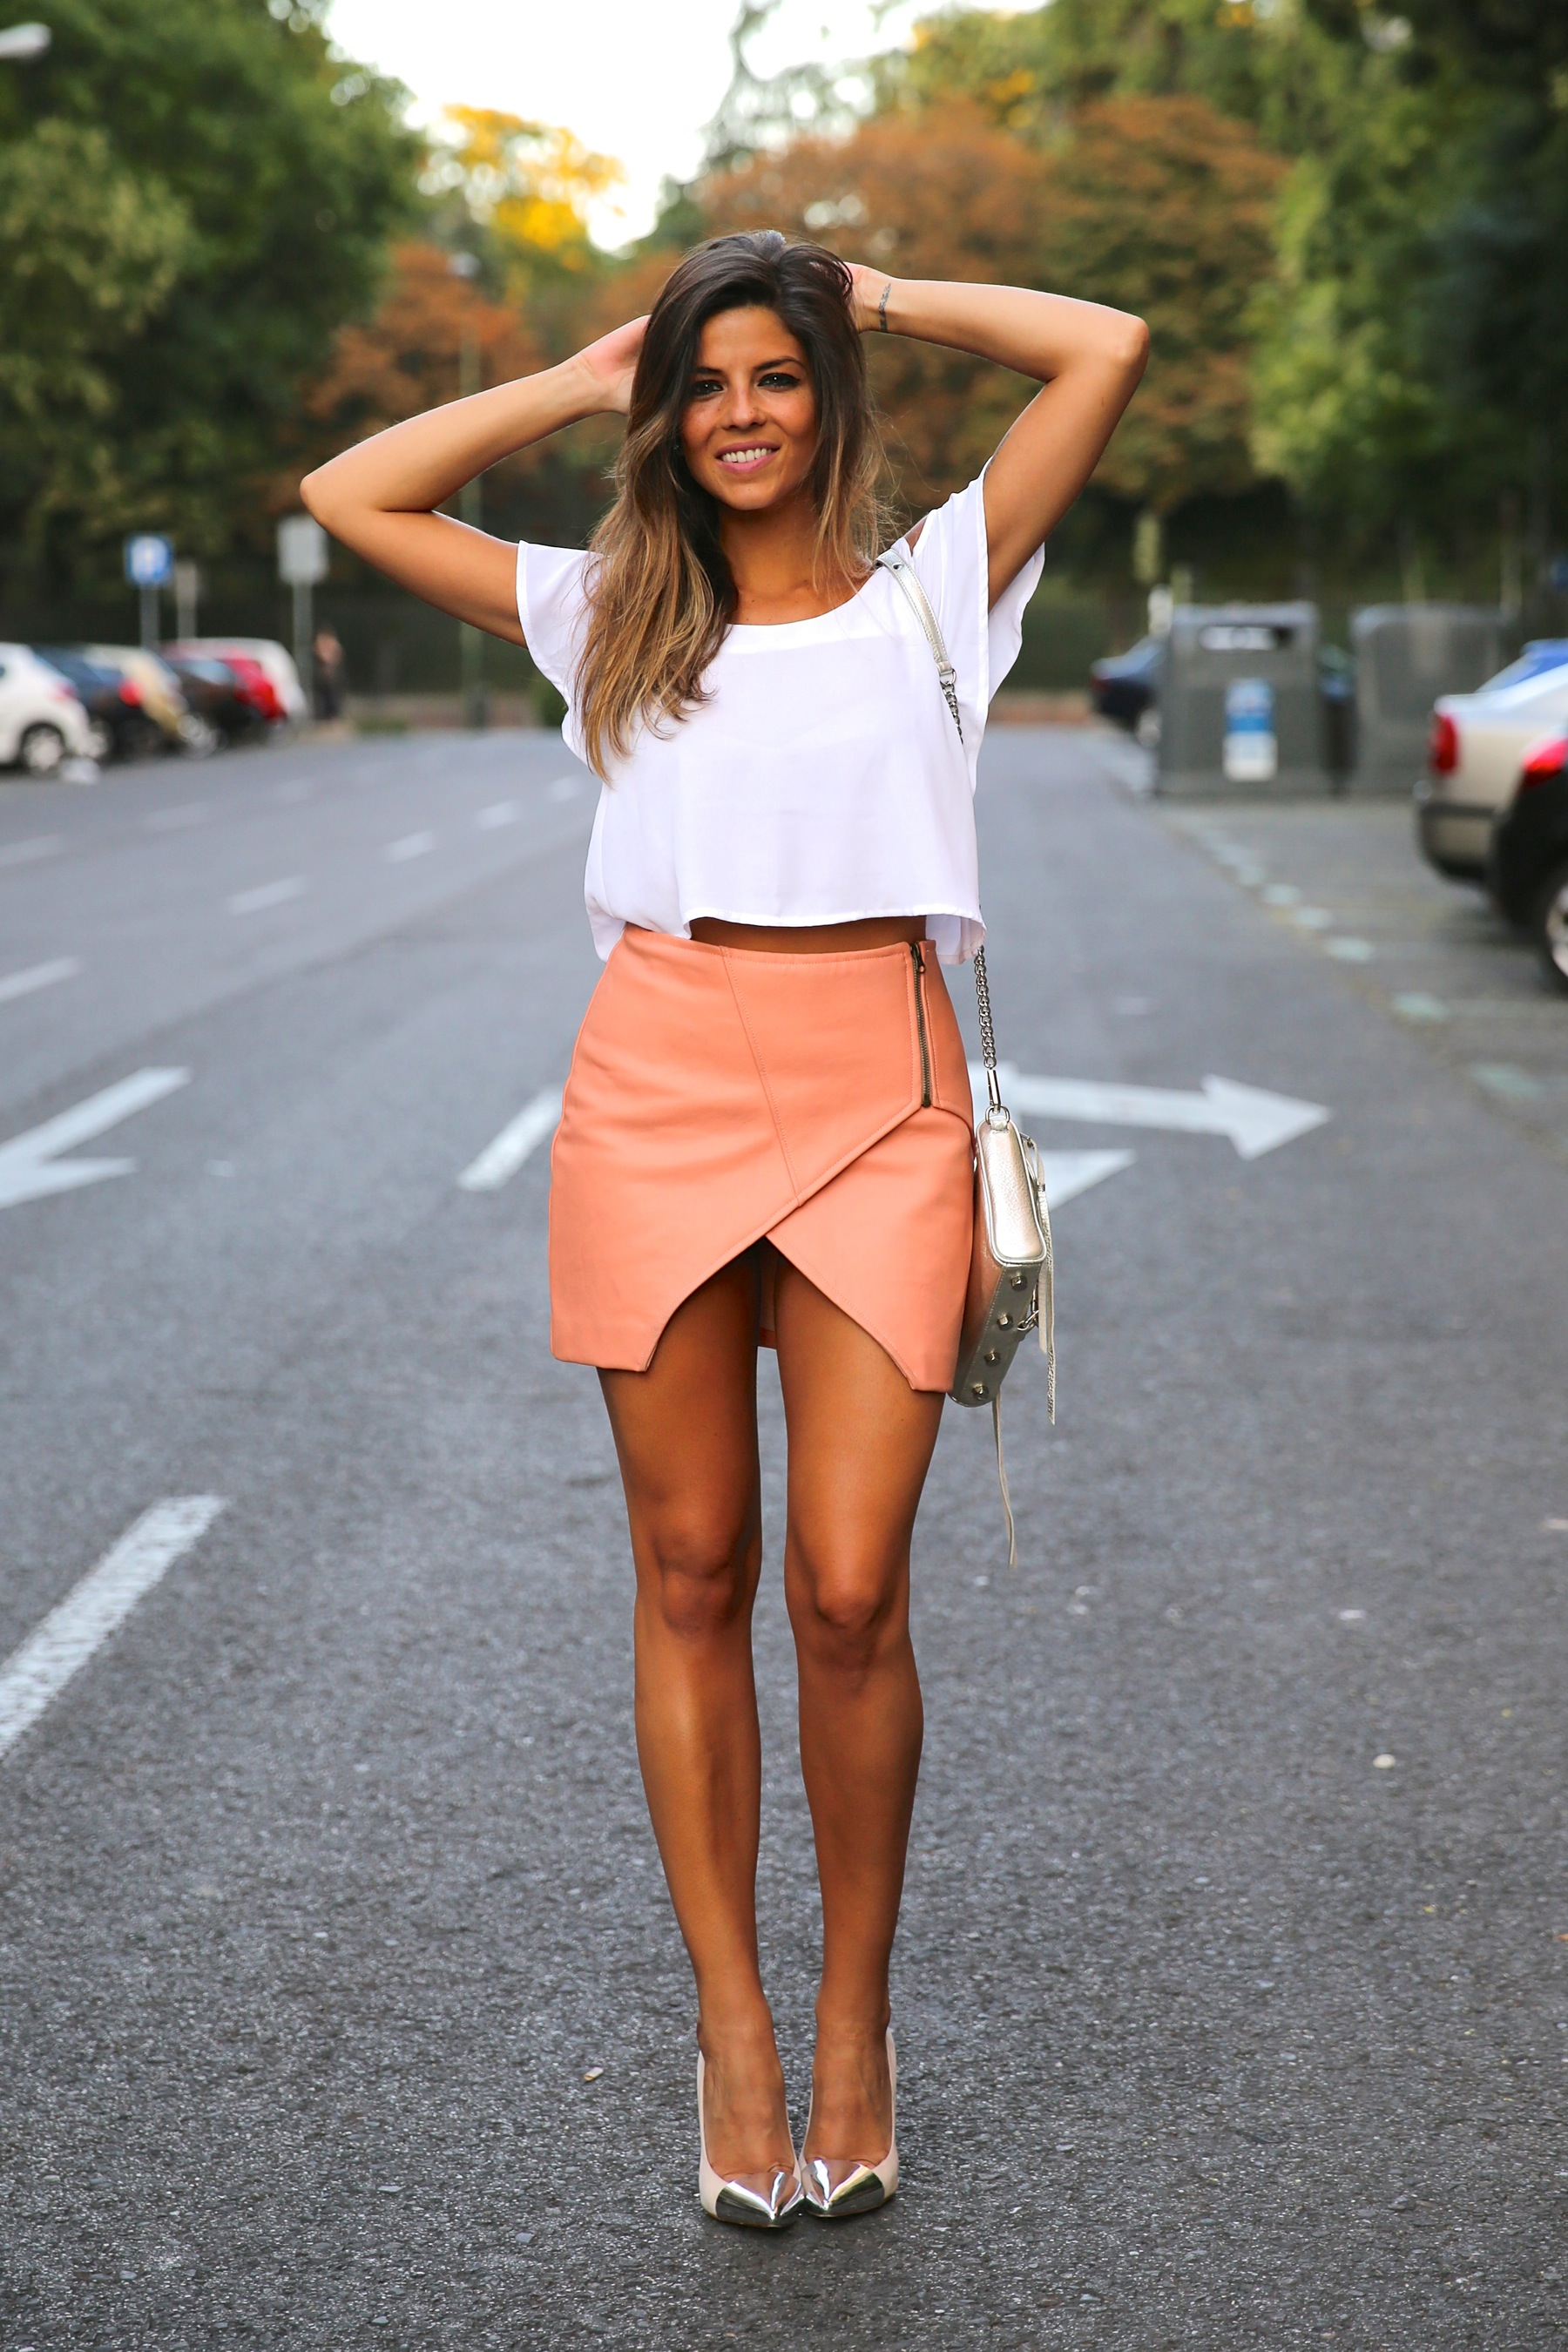 trendy_taste-look-outfit-street_style-ootd-blog-blogger-fashion_spain-moda_españa-madrid-silver_stilettos-punta_plata-estiletos-falda_coral-coral_skirt-top-11